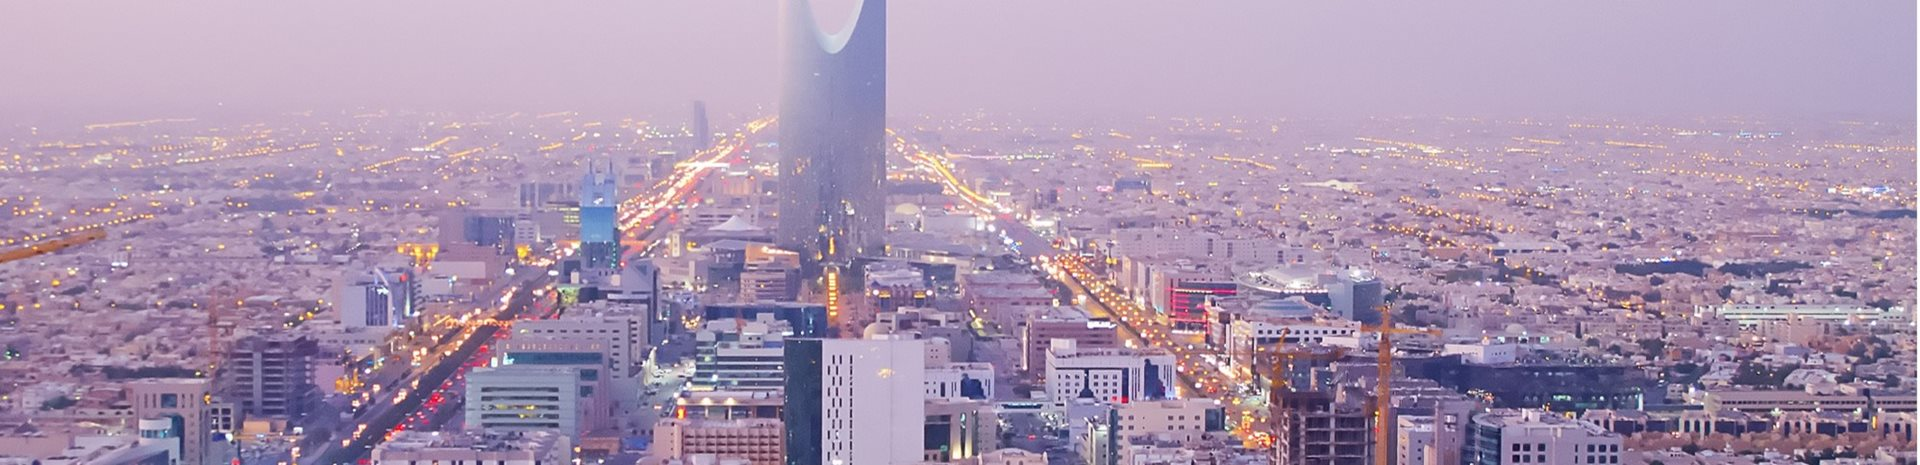 Measuring and improving air quality in the Saudi Arabian